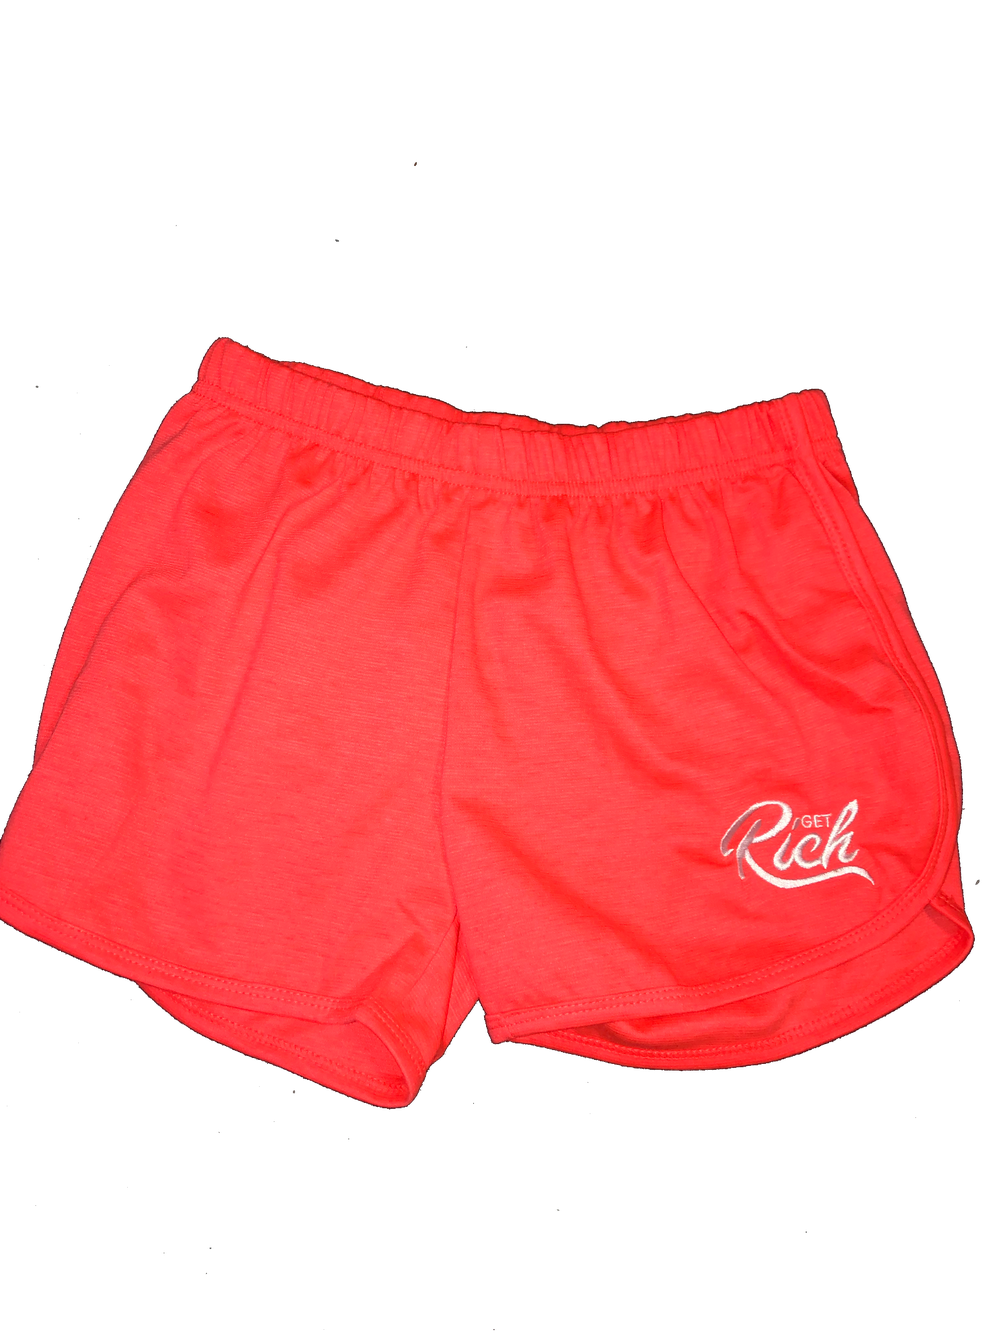 Image of Get Rich - Women's Shorts (Orange)